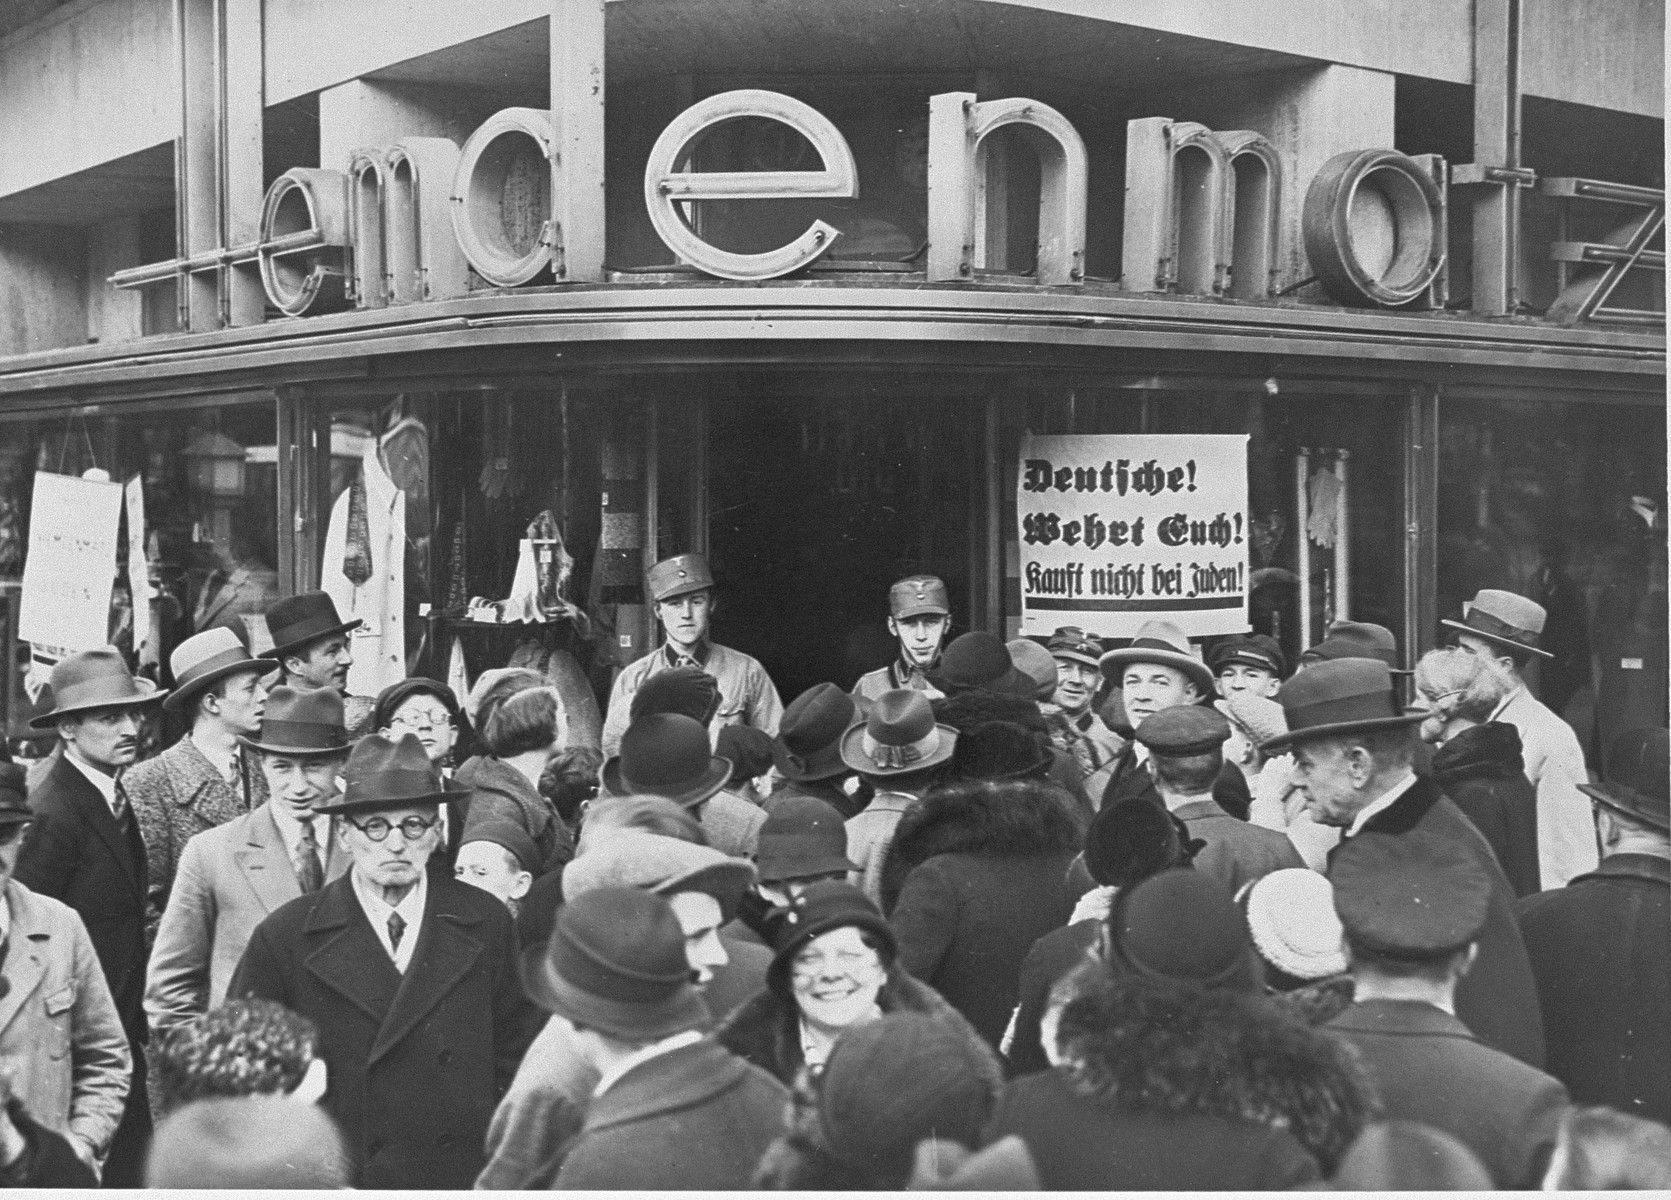 A crowd of Germans is gathered in front of a Jewish-owned department store in Berlin on the first day of the boycott.  Signs exhorting Germans not to buy from Jews are posted on the store front.